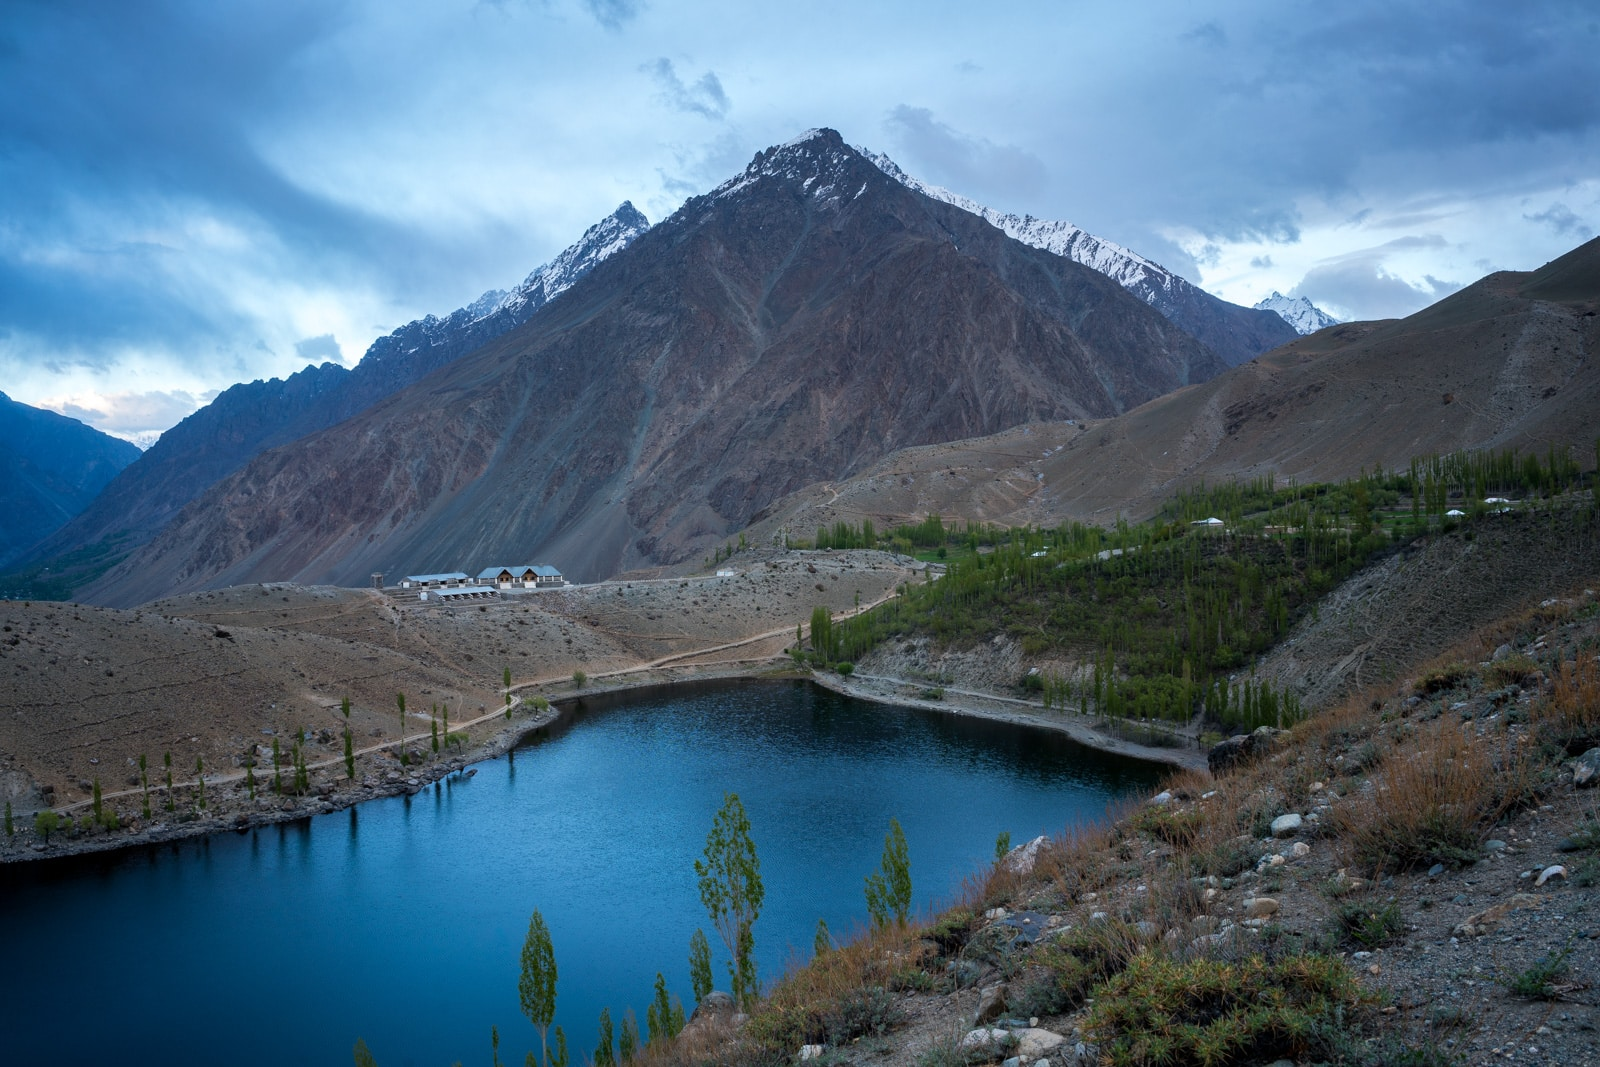 Phander Valley travel guide - A view of the PTDC Phander, Pakistan - Lost With Purpose travel blog